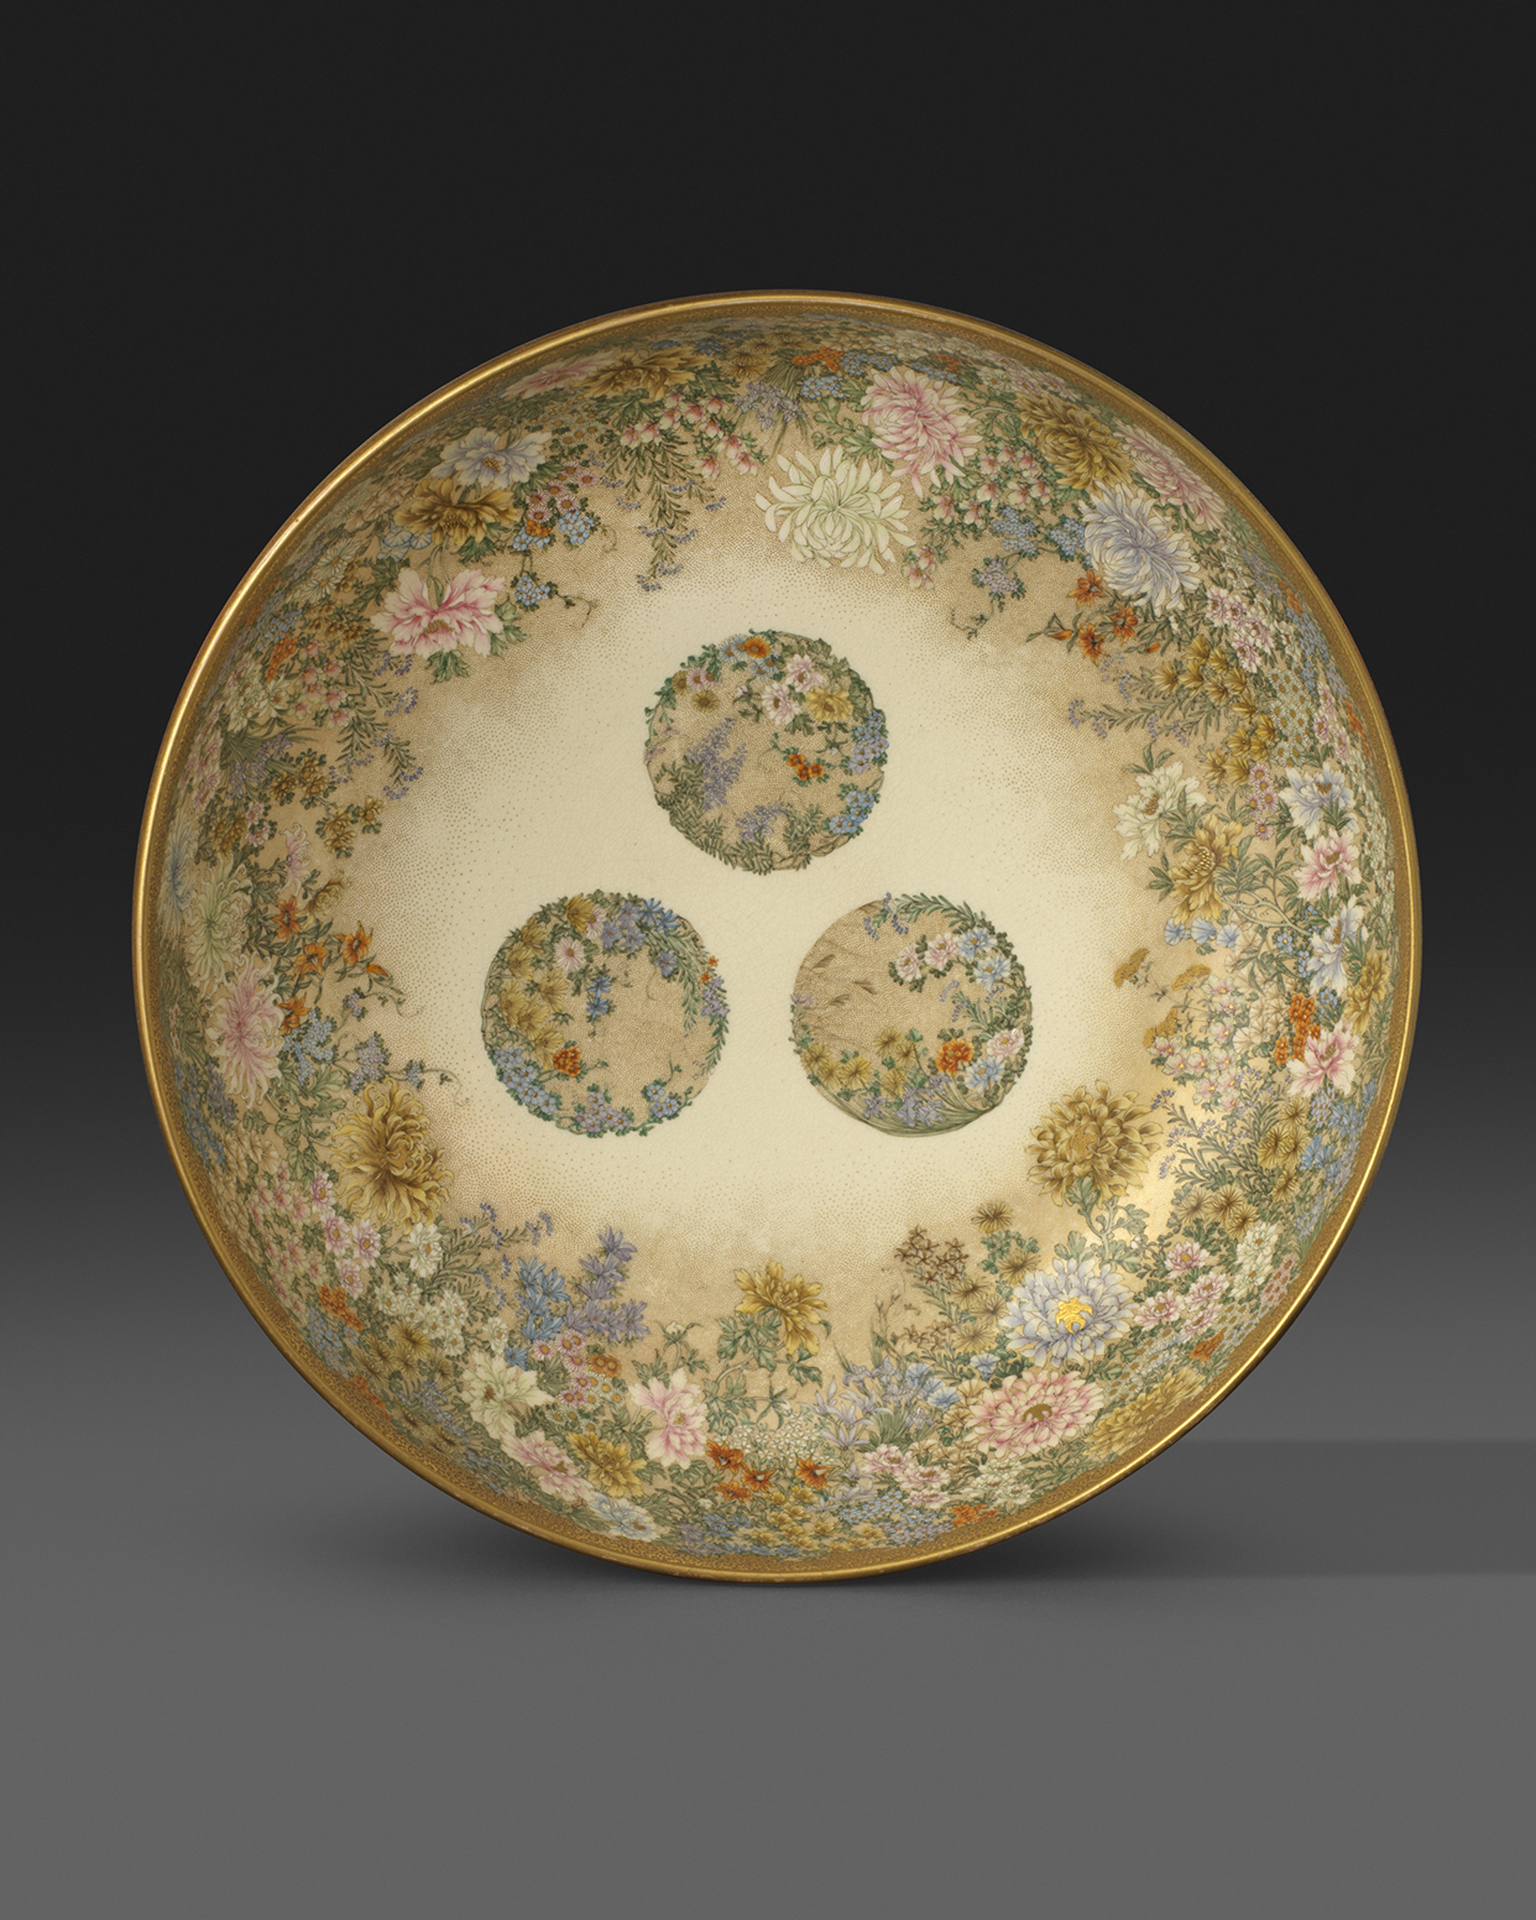 A large earthenware bowl, finely painted and gilt on both interior and exterior with numerous flowers. Signed and impressed Kinkozan zo, Meiji Period Circa 1900, 28.2cm